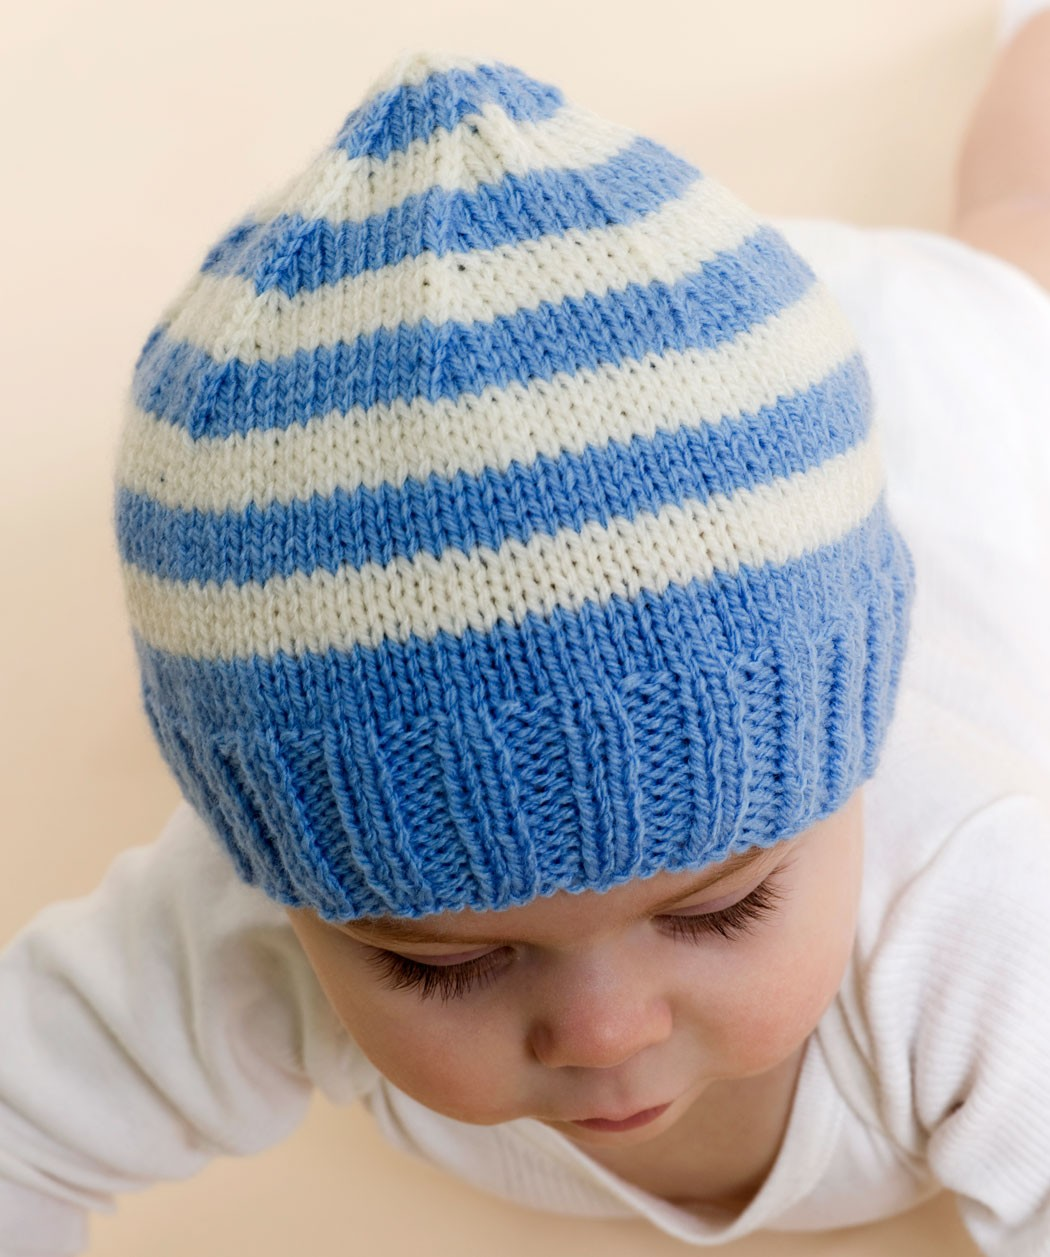 Stripe Knit Baby Hat Pattern